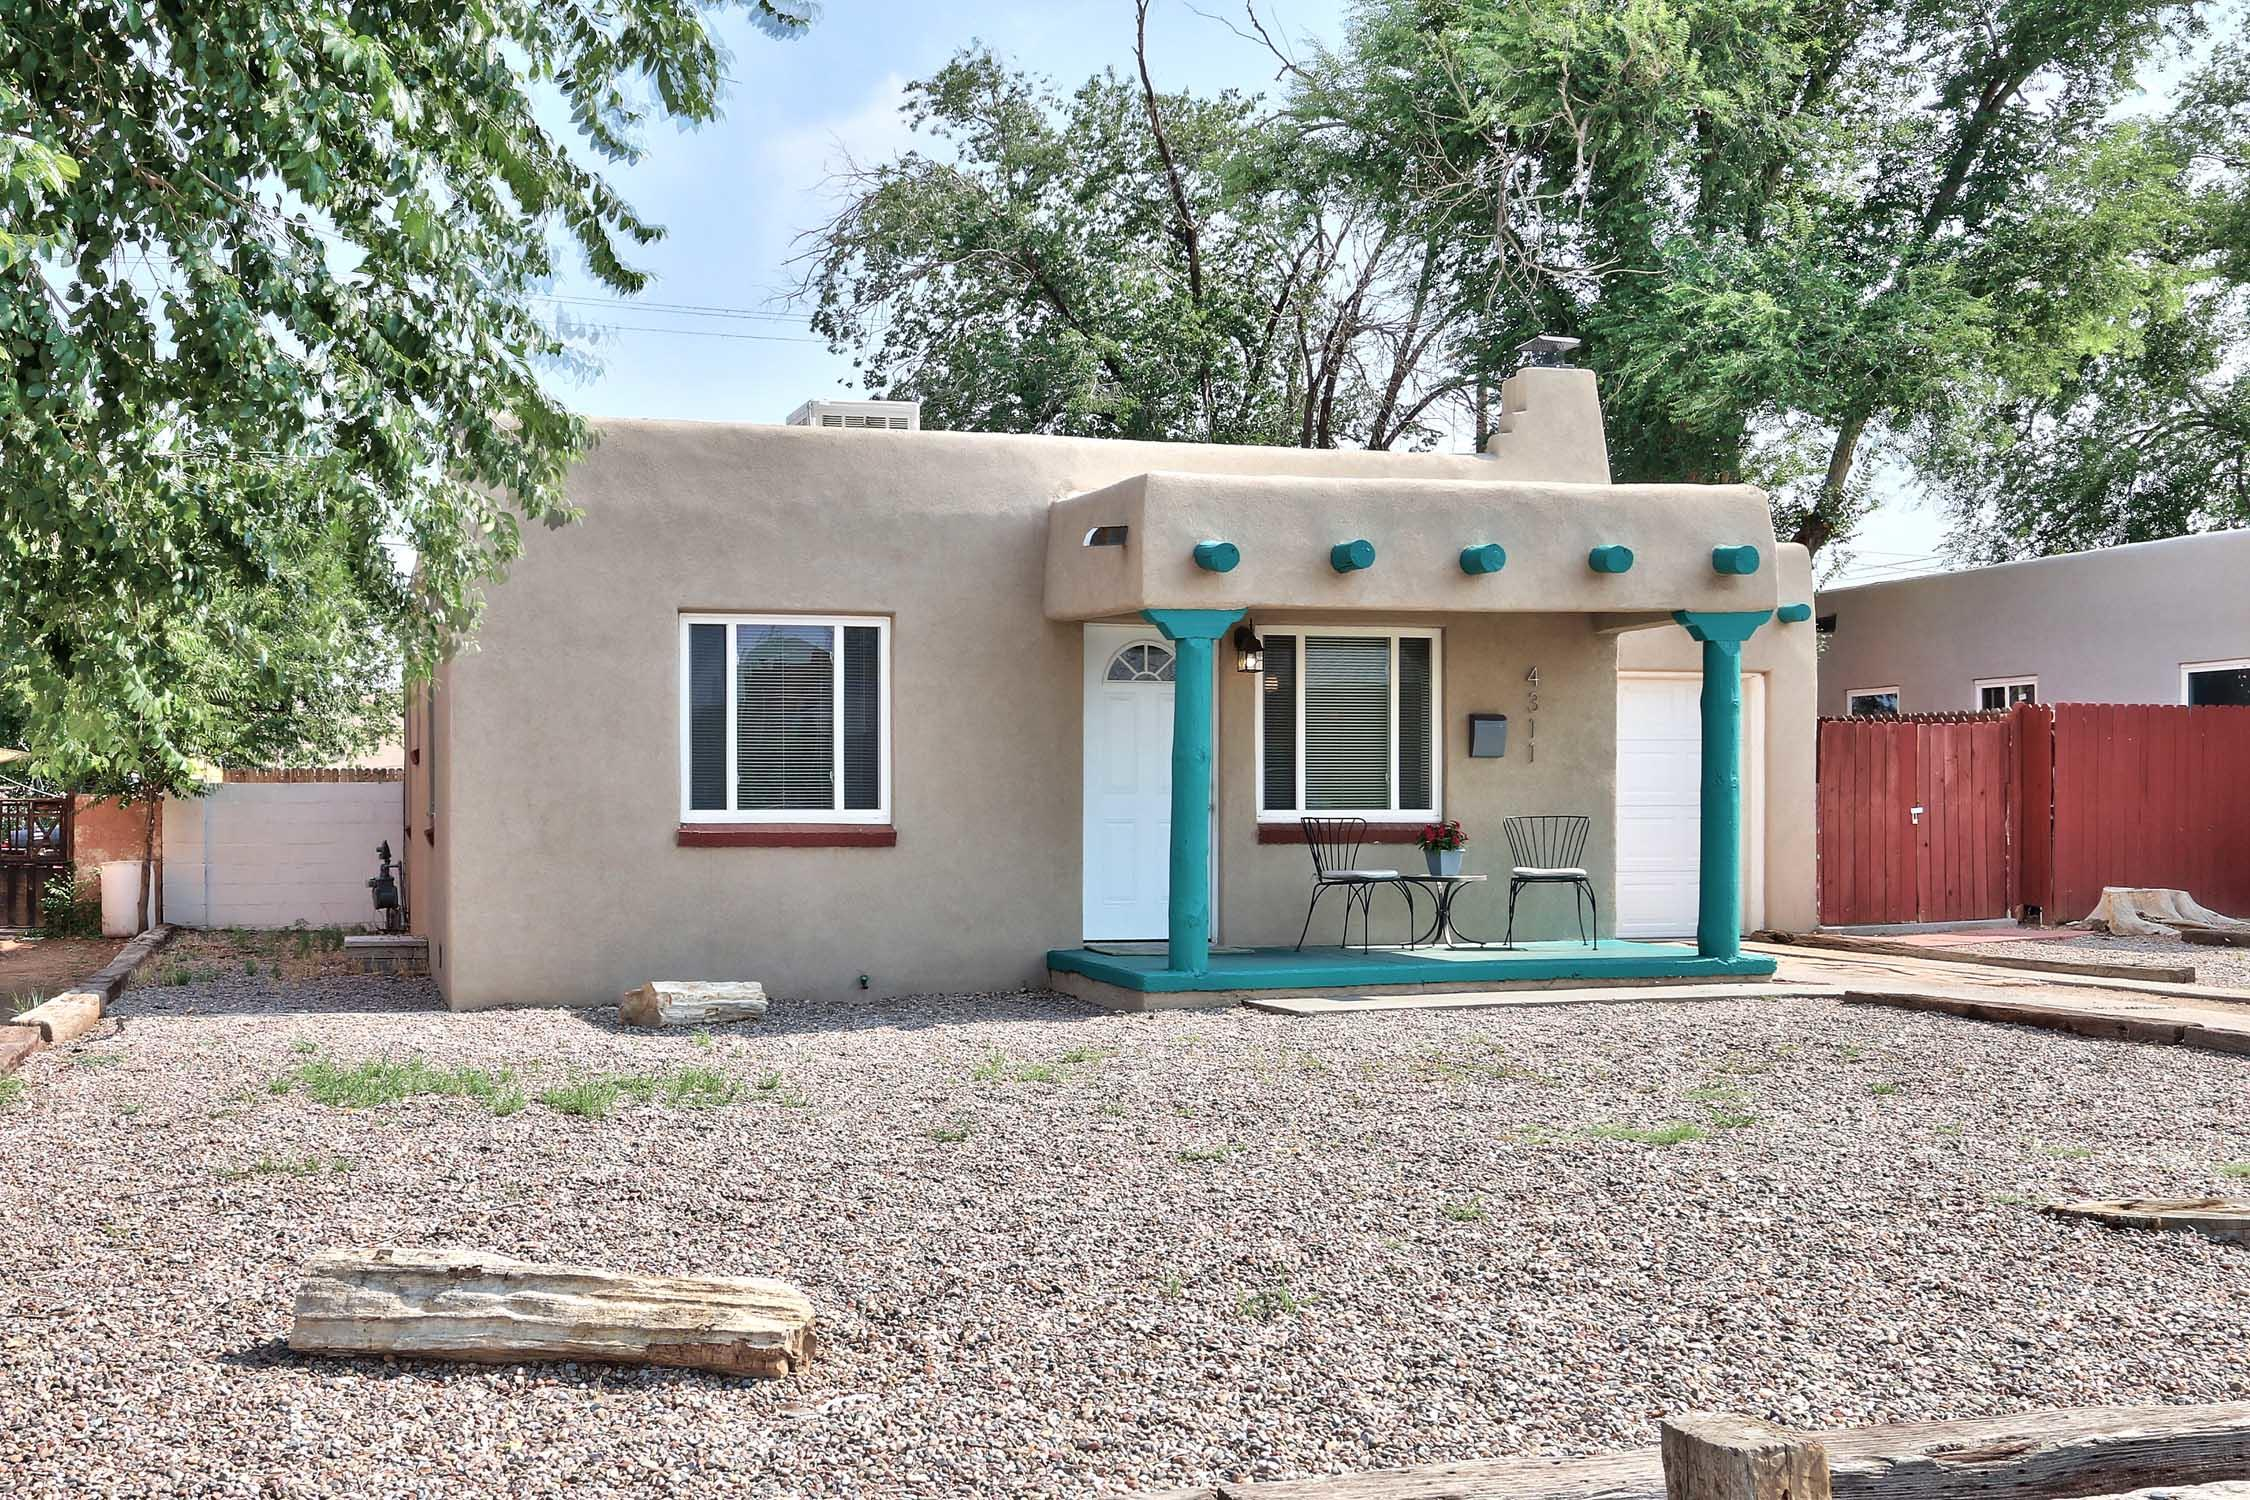 Darling, light-filled UNM area home with hardwood floors and upgraded kitchen featuring granite countertops, stainless steel appliances, modern white cabinetry and ample storage.  Beautiful tile and hardwood floors -- no carpet. 2017-2018 improvements include new TPO roof, new electrical, new breaker box, new evaporative cooler, new synthetic stucco and new windows. Large backyard with storage shed for your tools and toys. A true charmer at an affordable price close to all amenities, including UNM, Nob Hill, medical facilities and more.